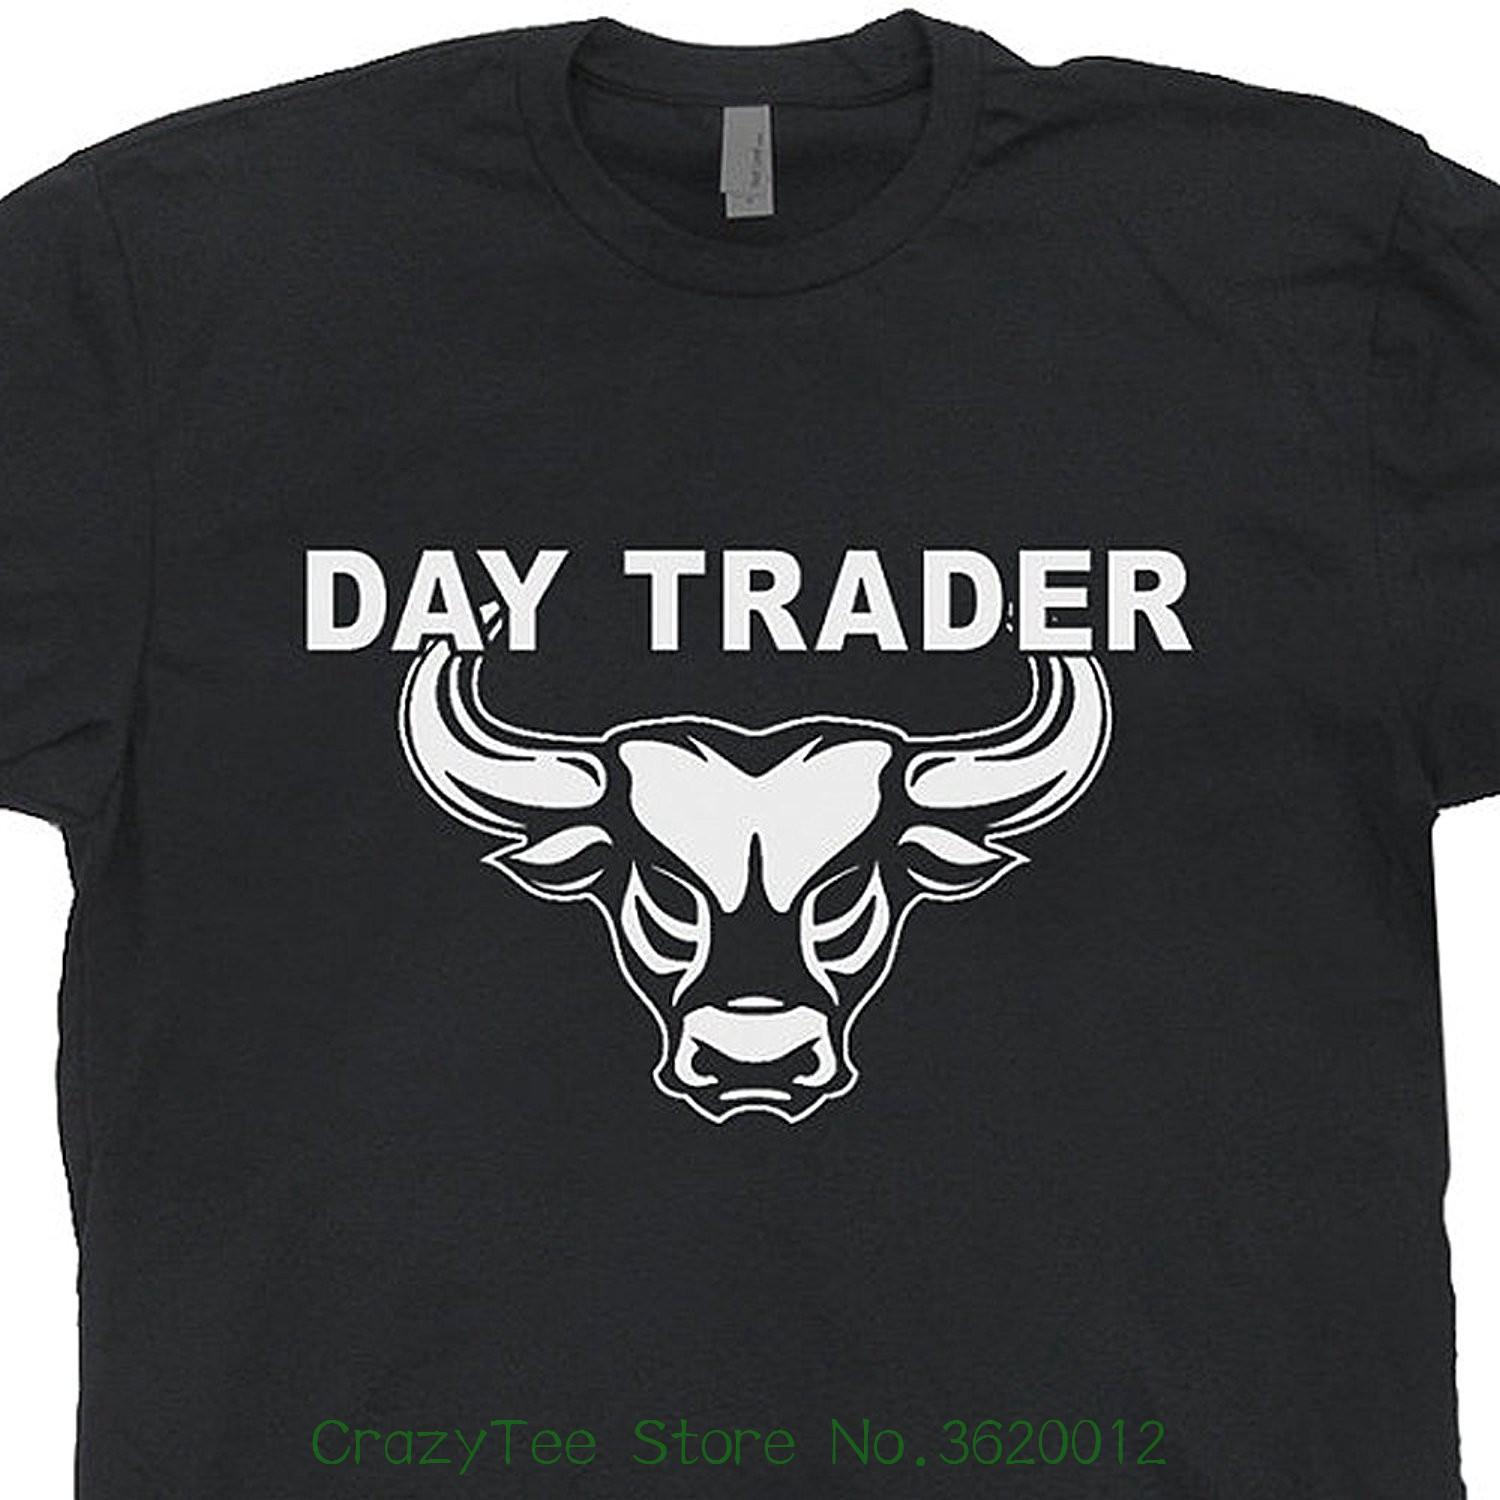 Style Short Sleeve Print Tee Shirt Day Trader T Shirt Wall Street Mad Stock Market Trading Cramer Money Tee Bull Bear Jim image